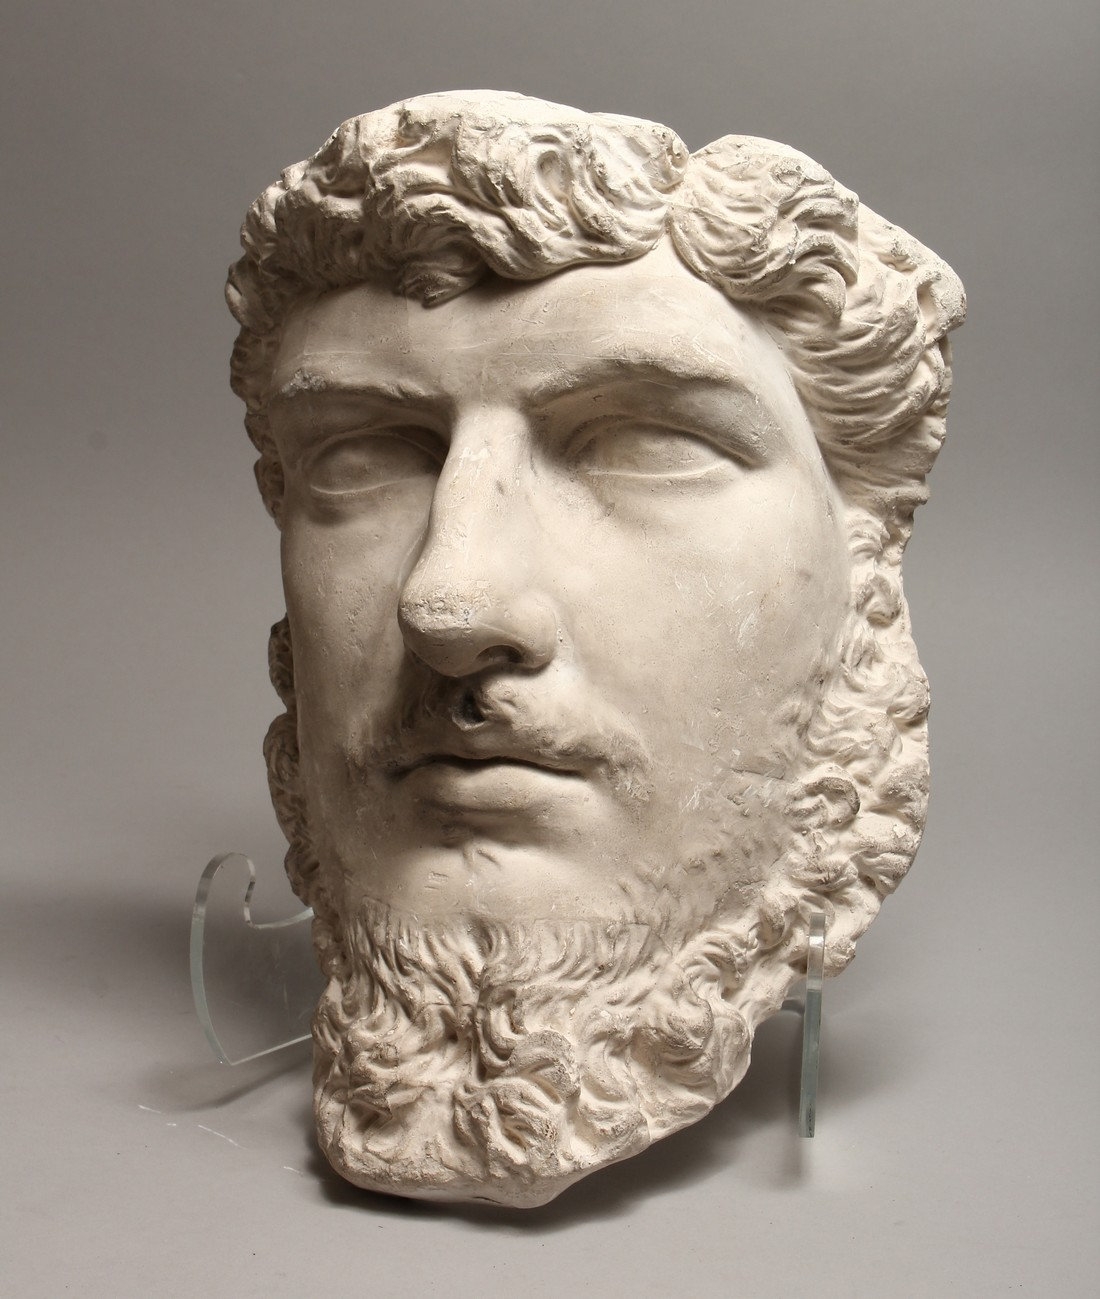 A RUSSIAN LARGE PLASTER HEAD OF A MAN 14ins long